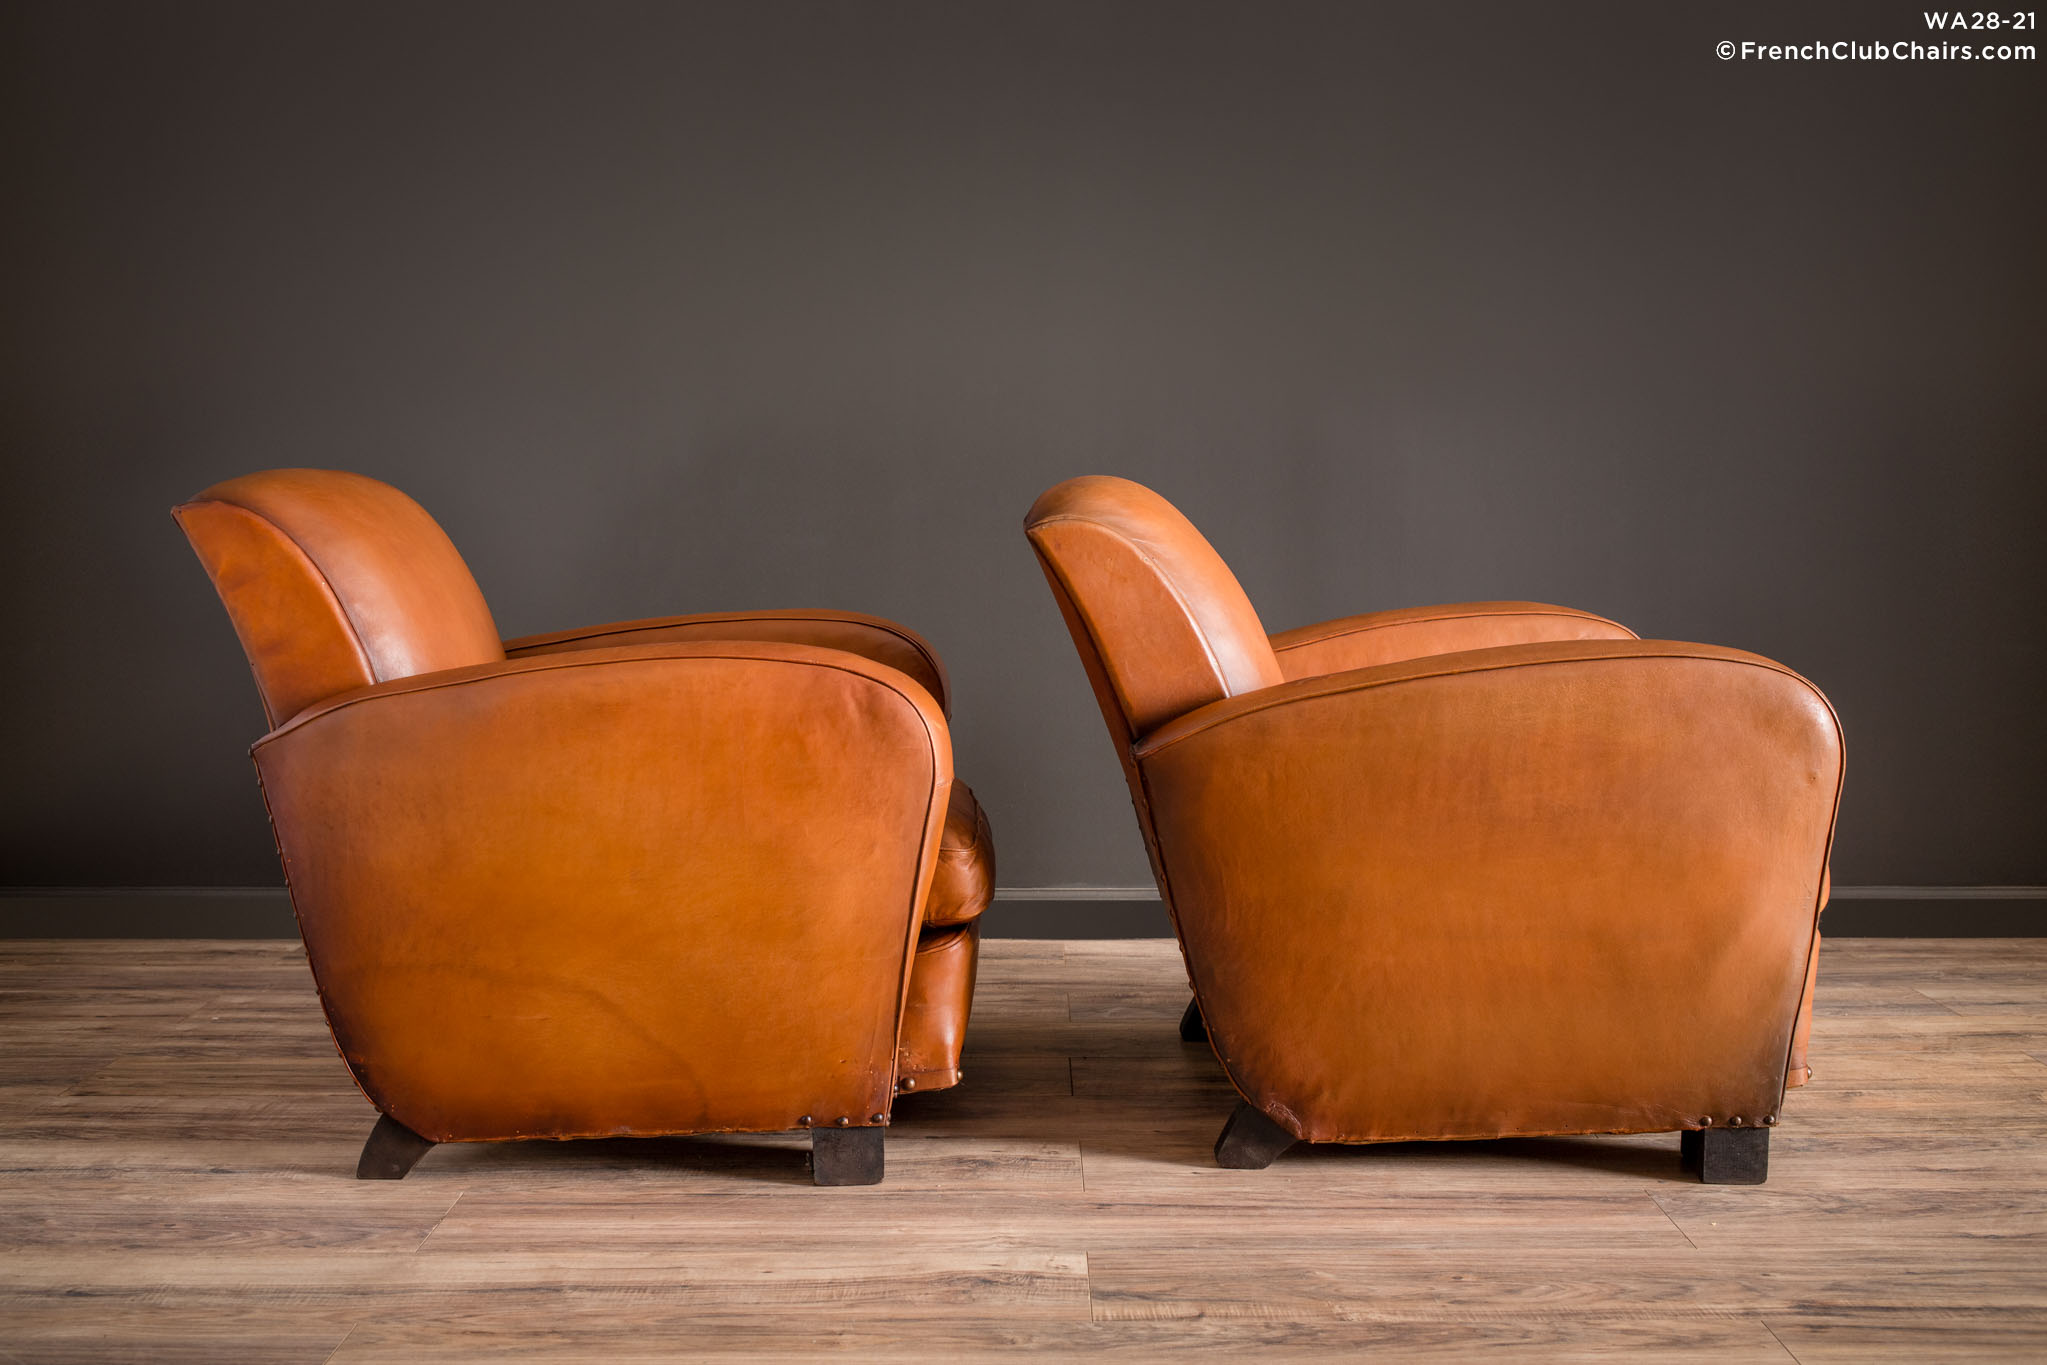 WA_28-21_Marsailles_Paquebot_Pair_R_3RT1-williams-antiks-leather-french-club-chair-wa_fcccom